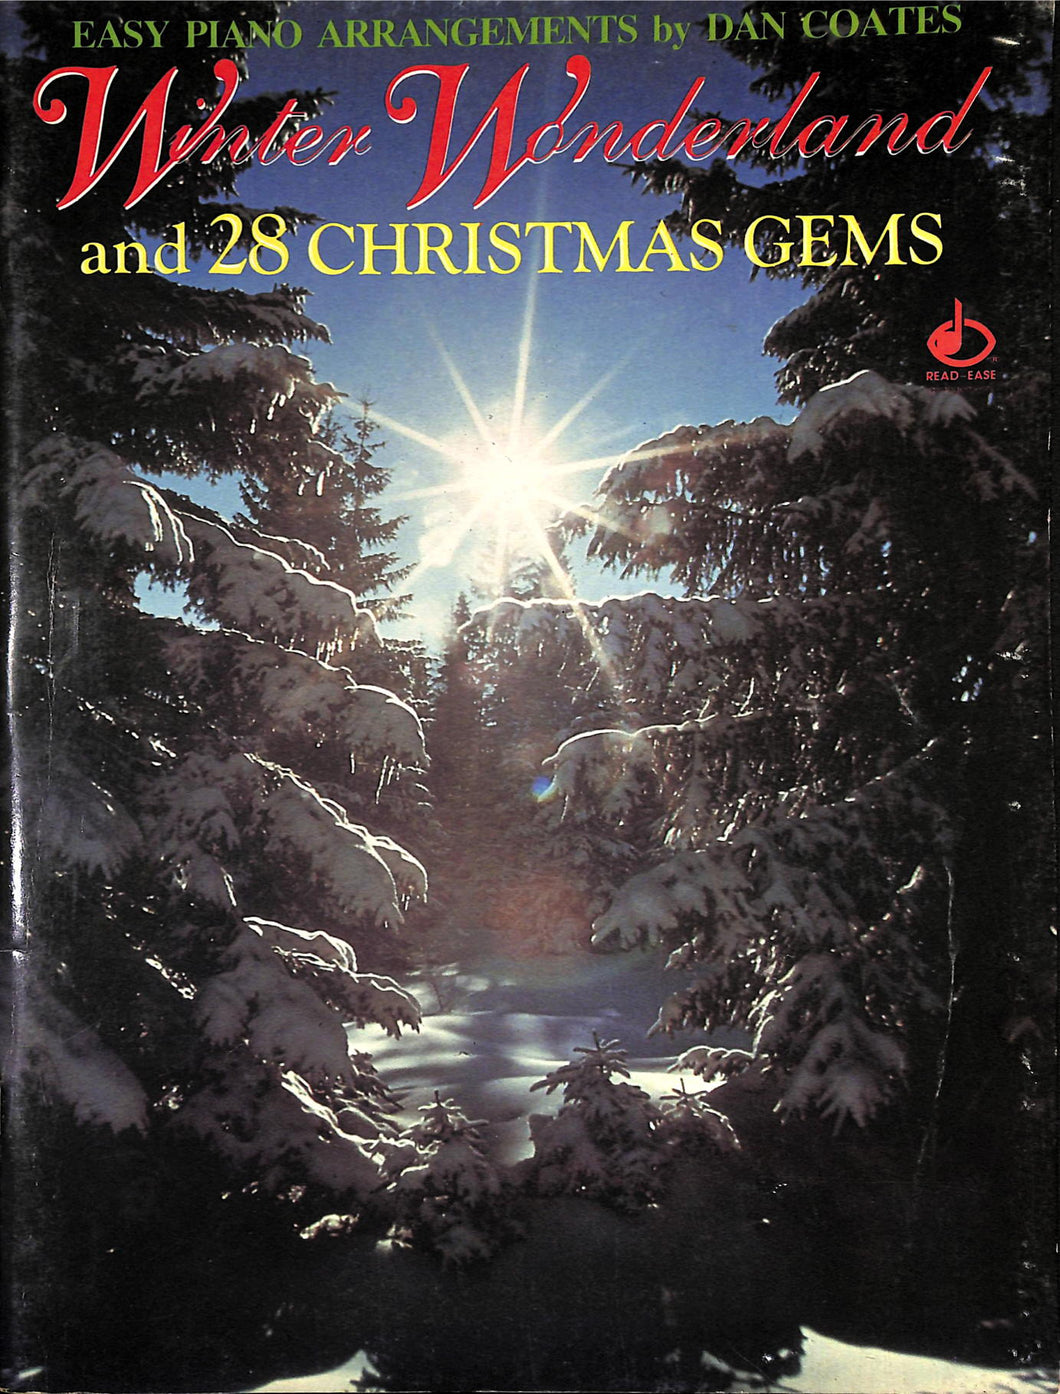 Easy Piano Arrangements Coates - Winter Wonderland and 28 Christmas Gems